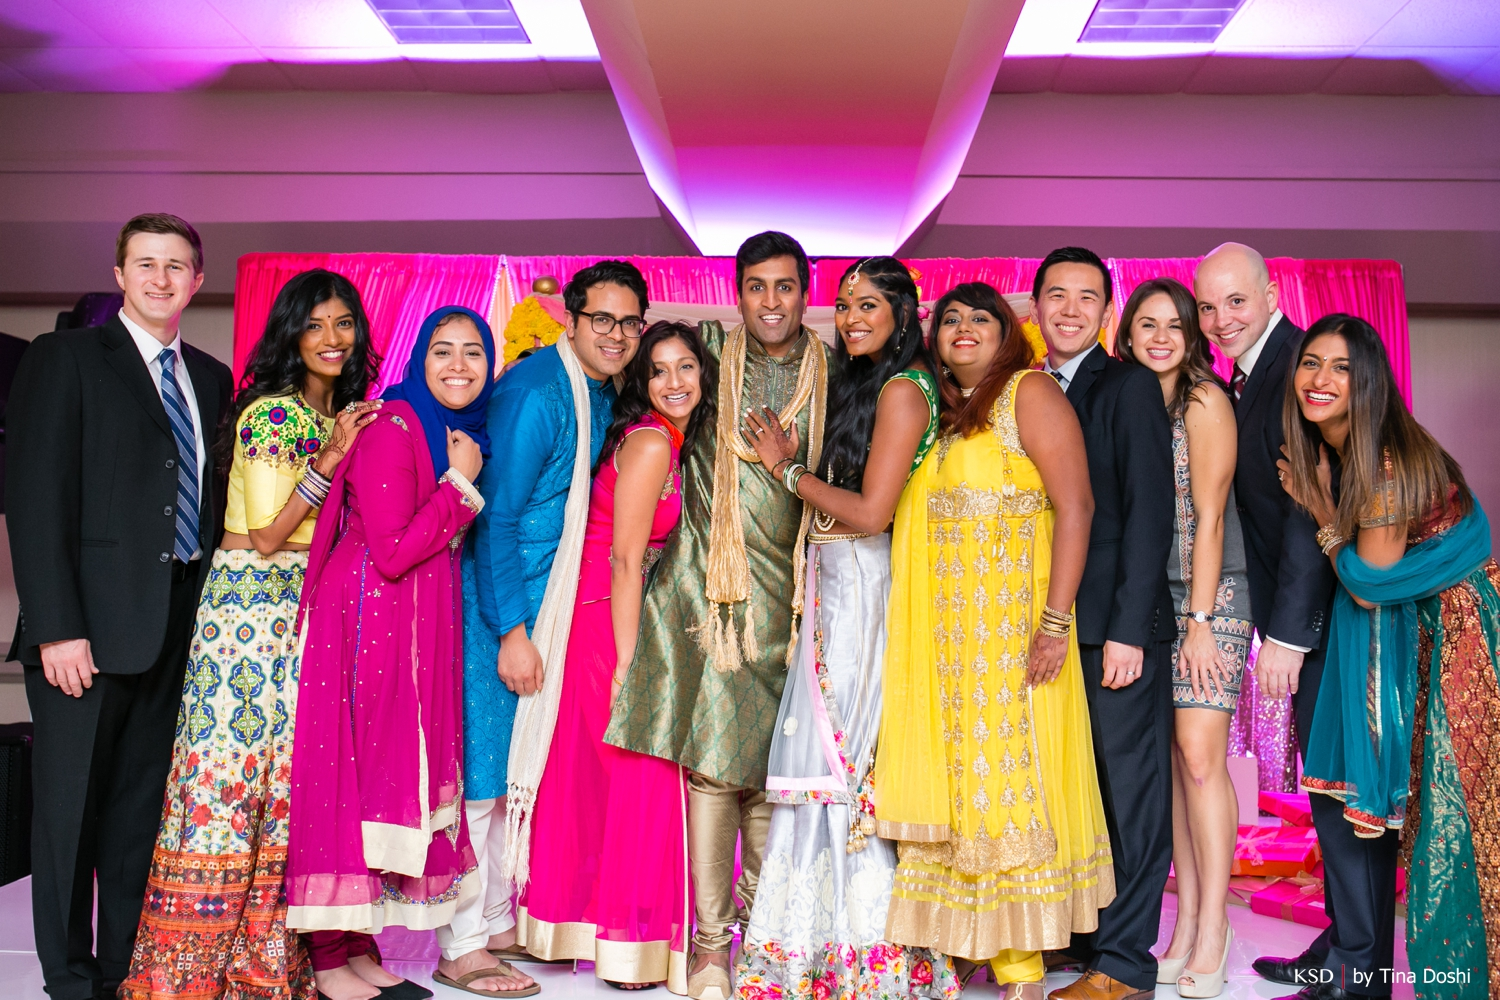 dallas_texas_indian_wedding_0032